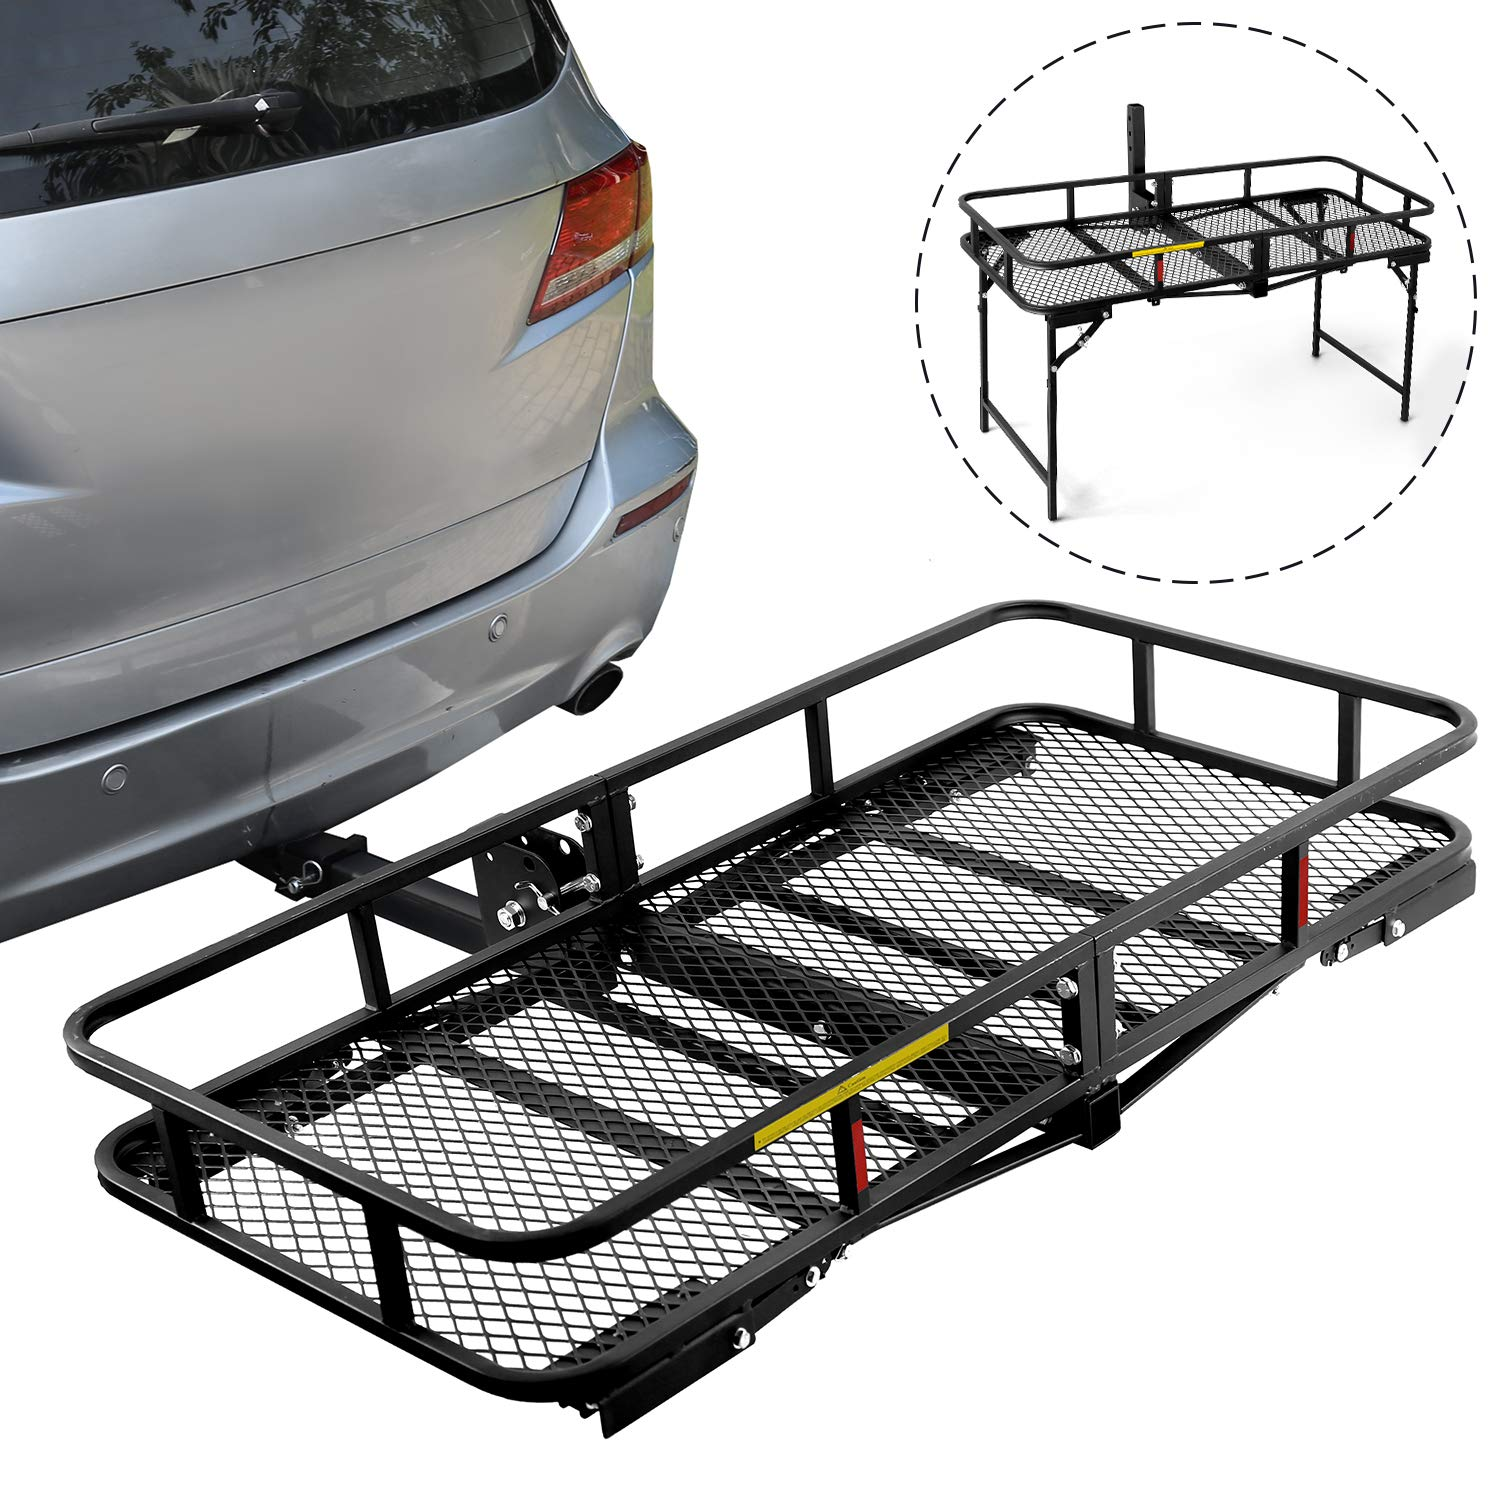 Leader Accessories Hitch Cargo Carrier With Stand Foldable Cargo Basket 60'' L x 24'' W x 6'' H with 500 LB Capacity Fits 2'' Receiver